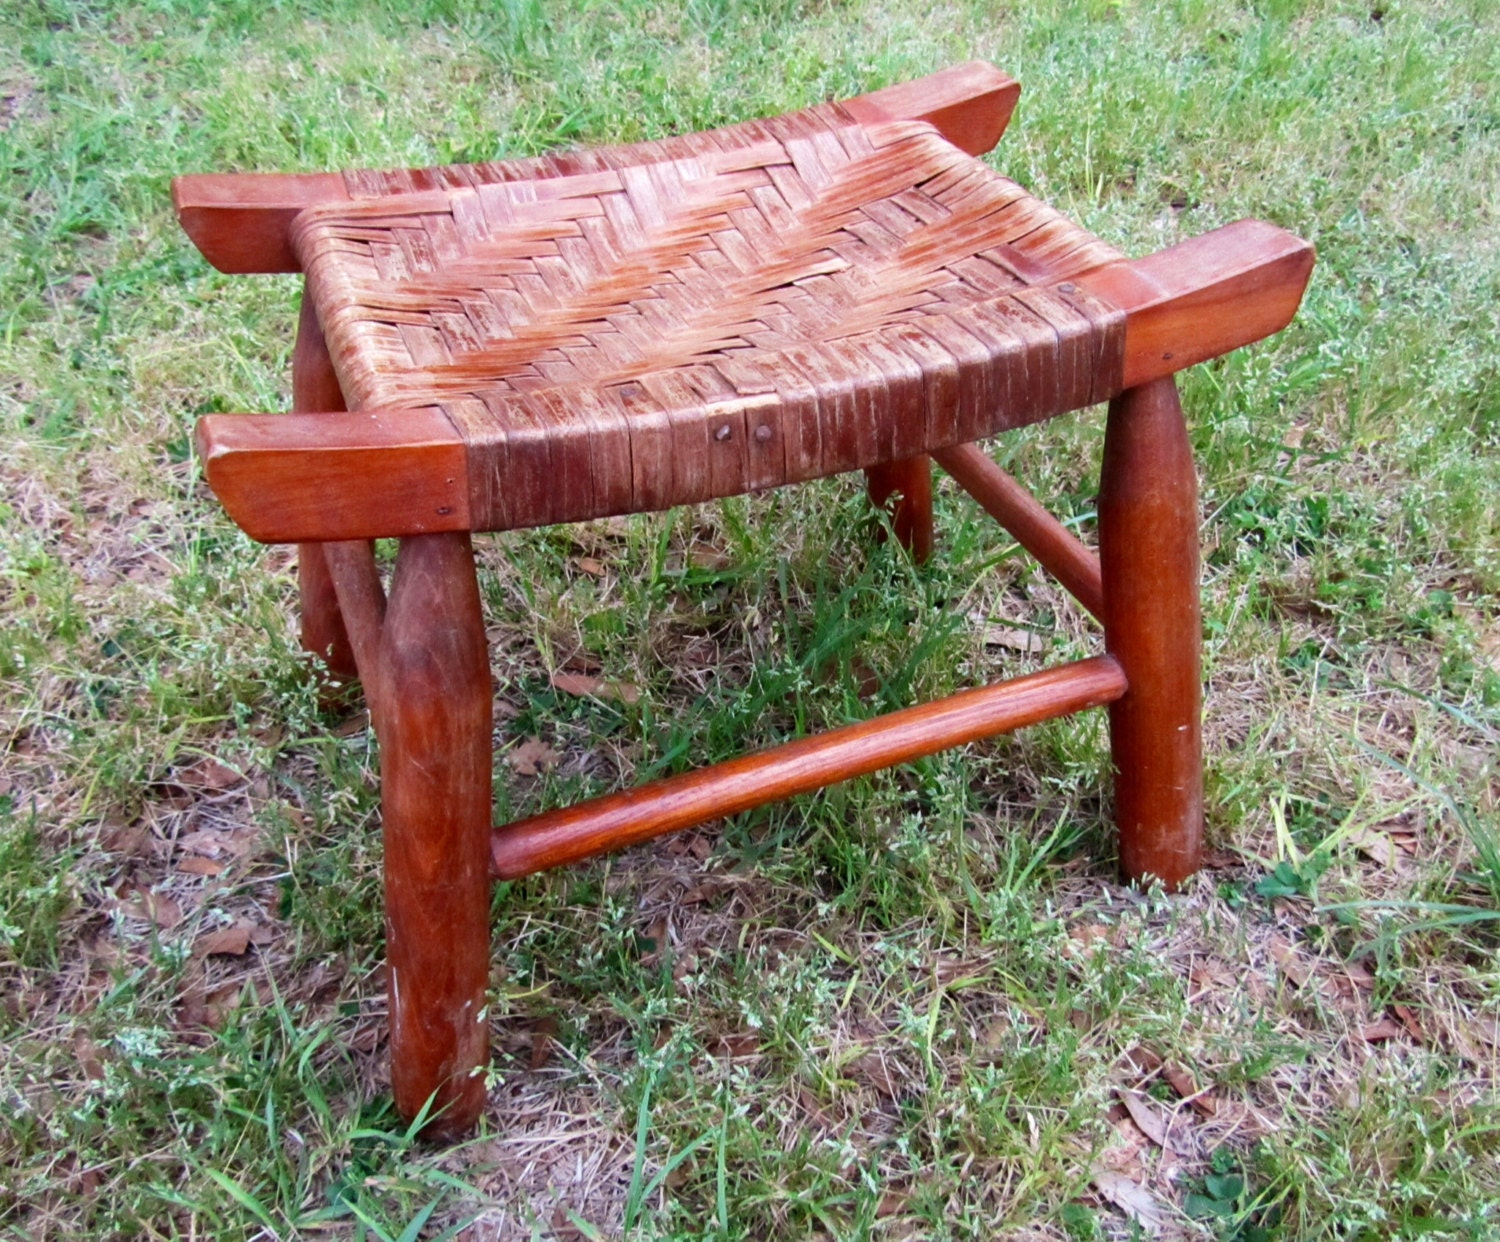 Vintage woven wooden foot stool wood bench seat